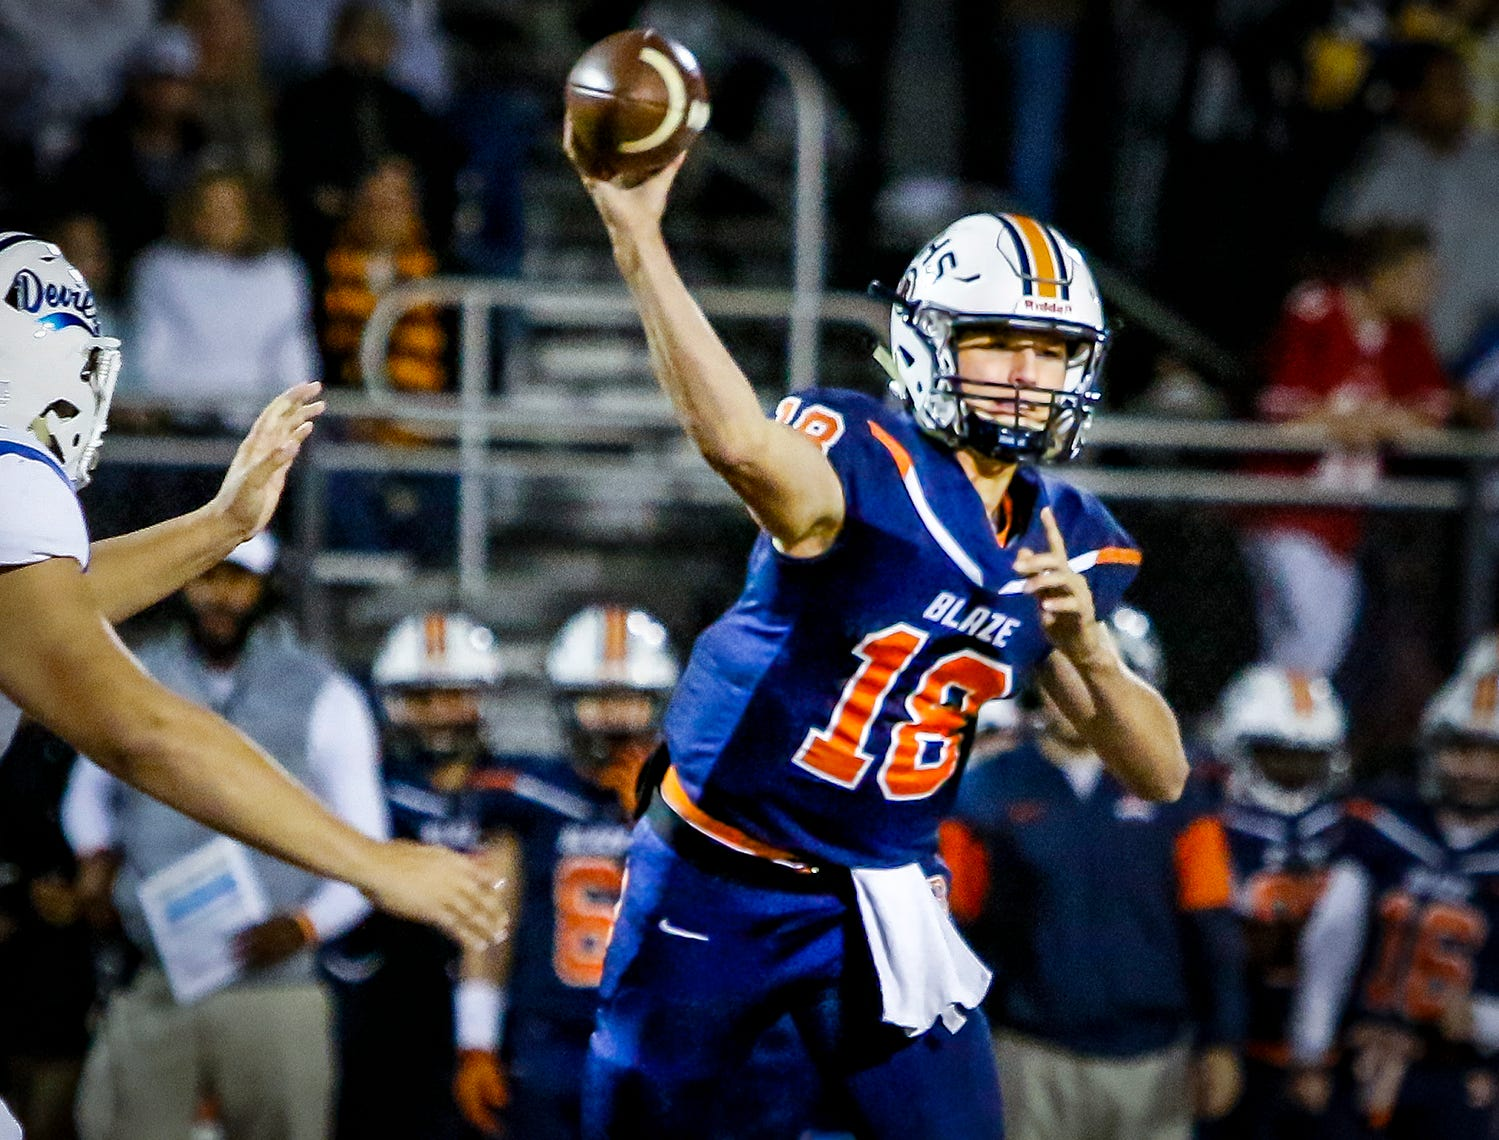 Drew Beam fires a pass in the first quarter of Blackman's first round playoff game against Lebanon.